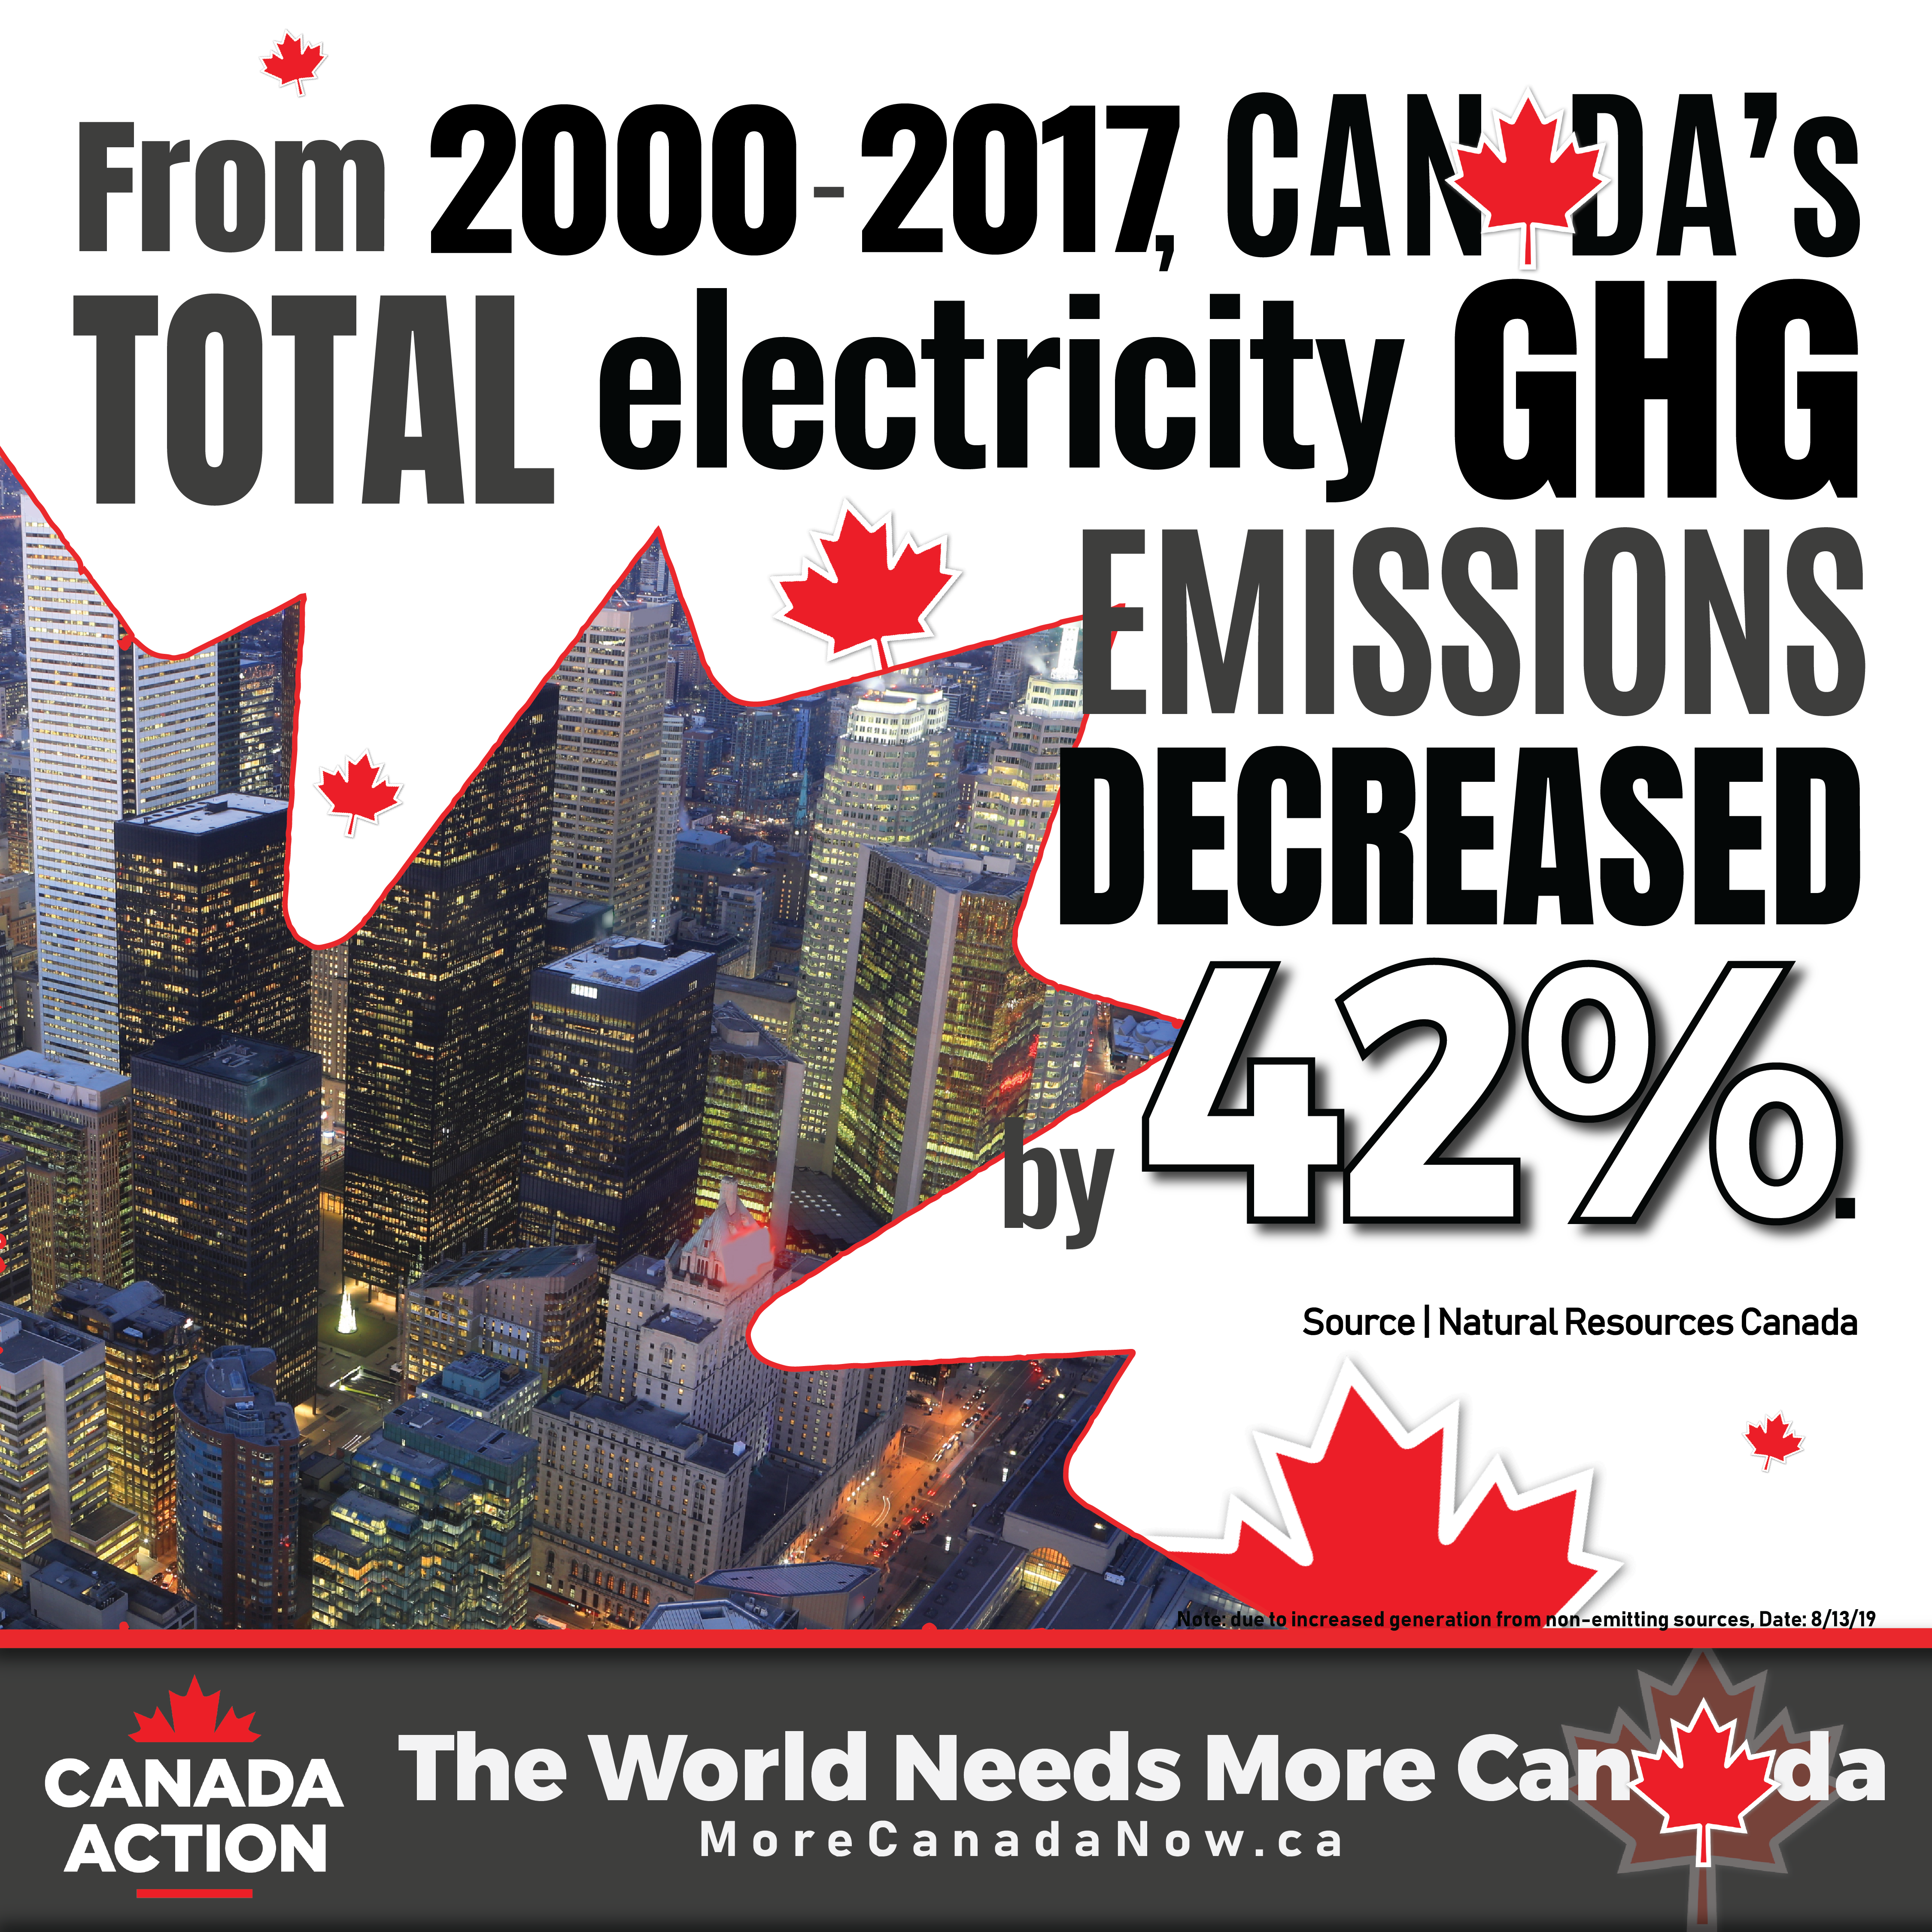 Canada's Total GHG Emissions from Electricity - Down 49% Between 2000-2017